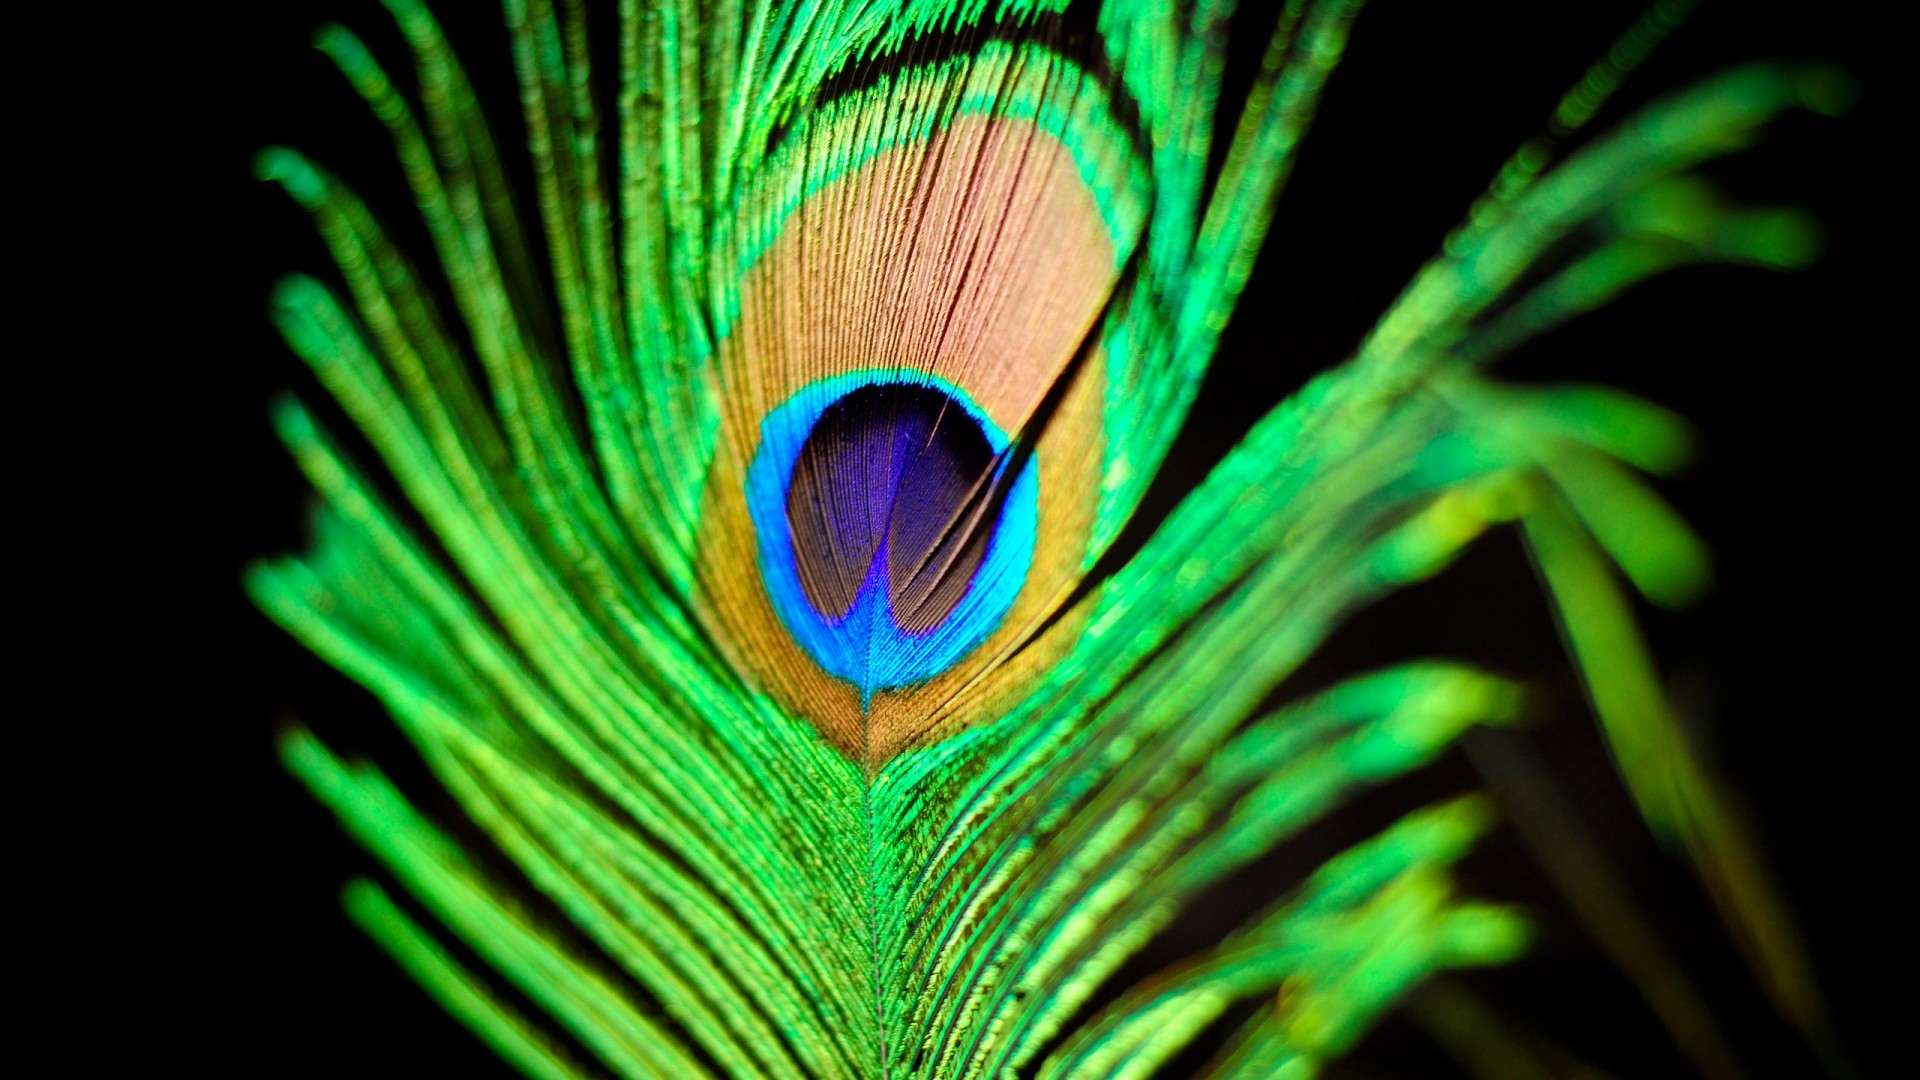 Feather Peacock Photography 1920x1080 1489